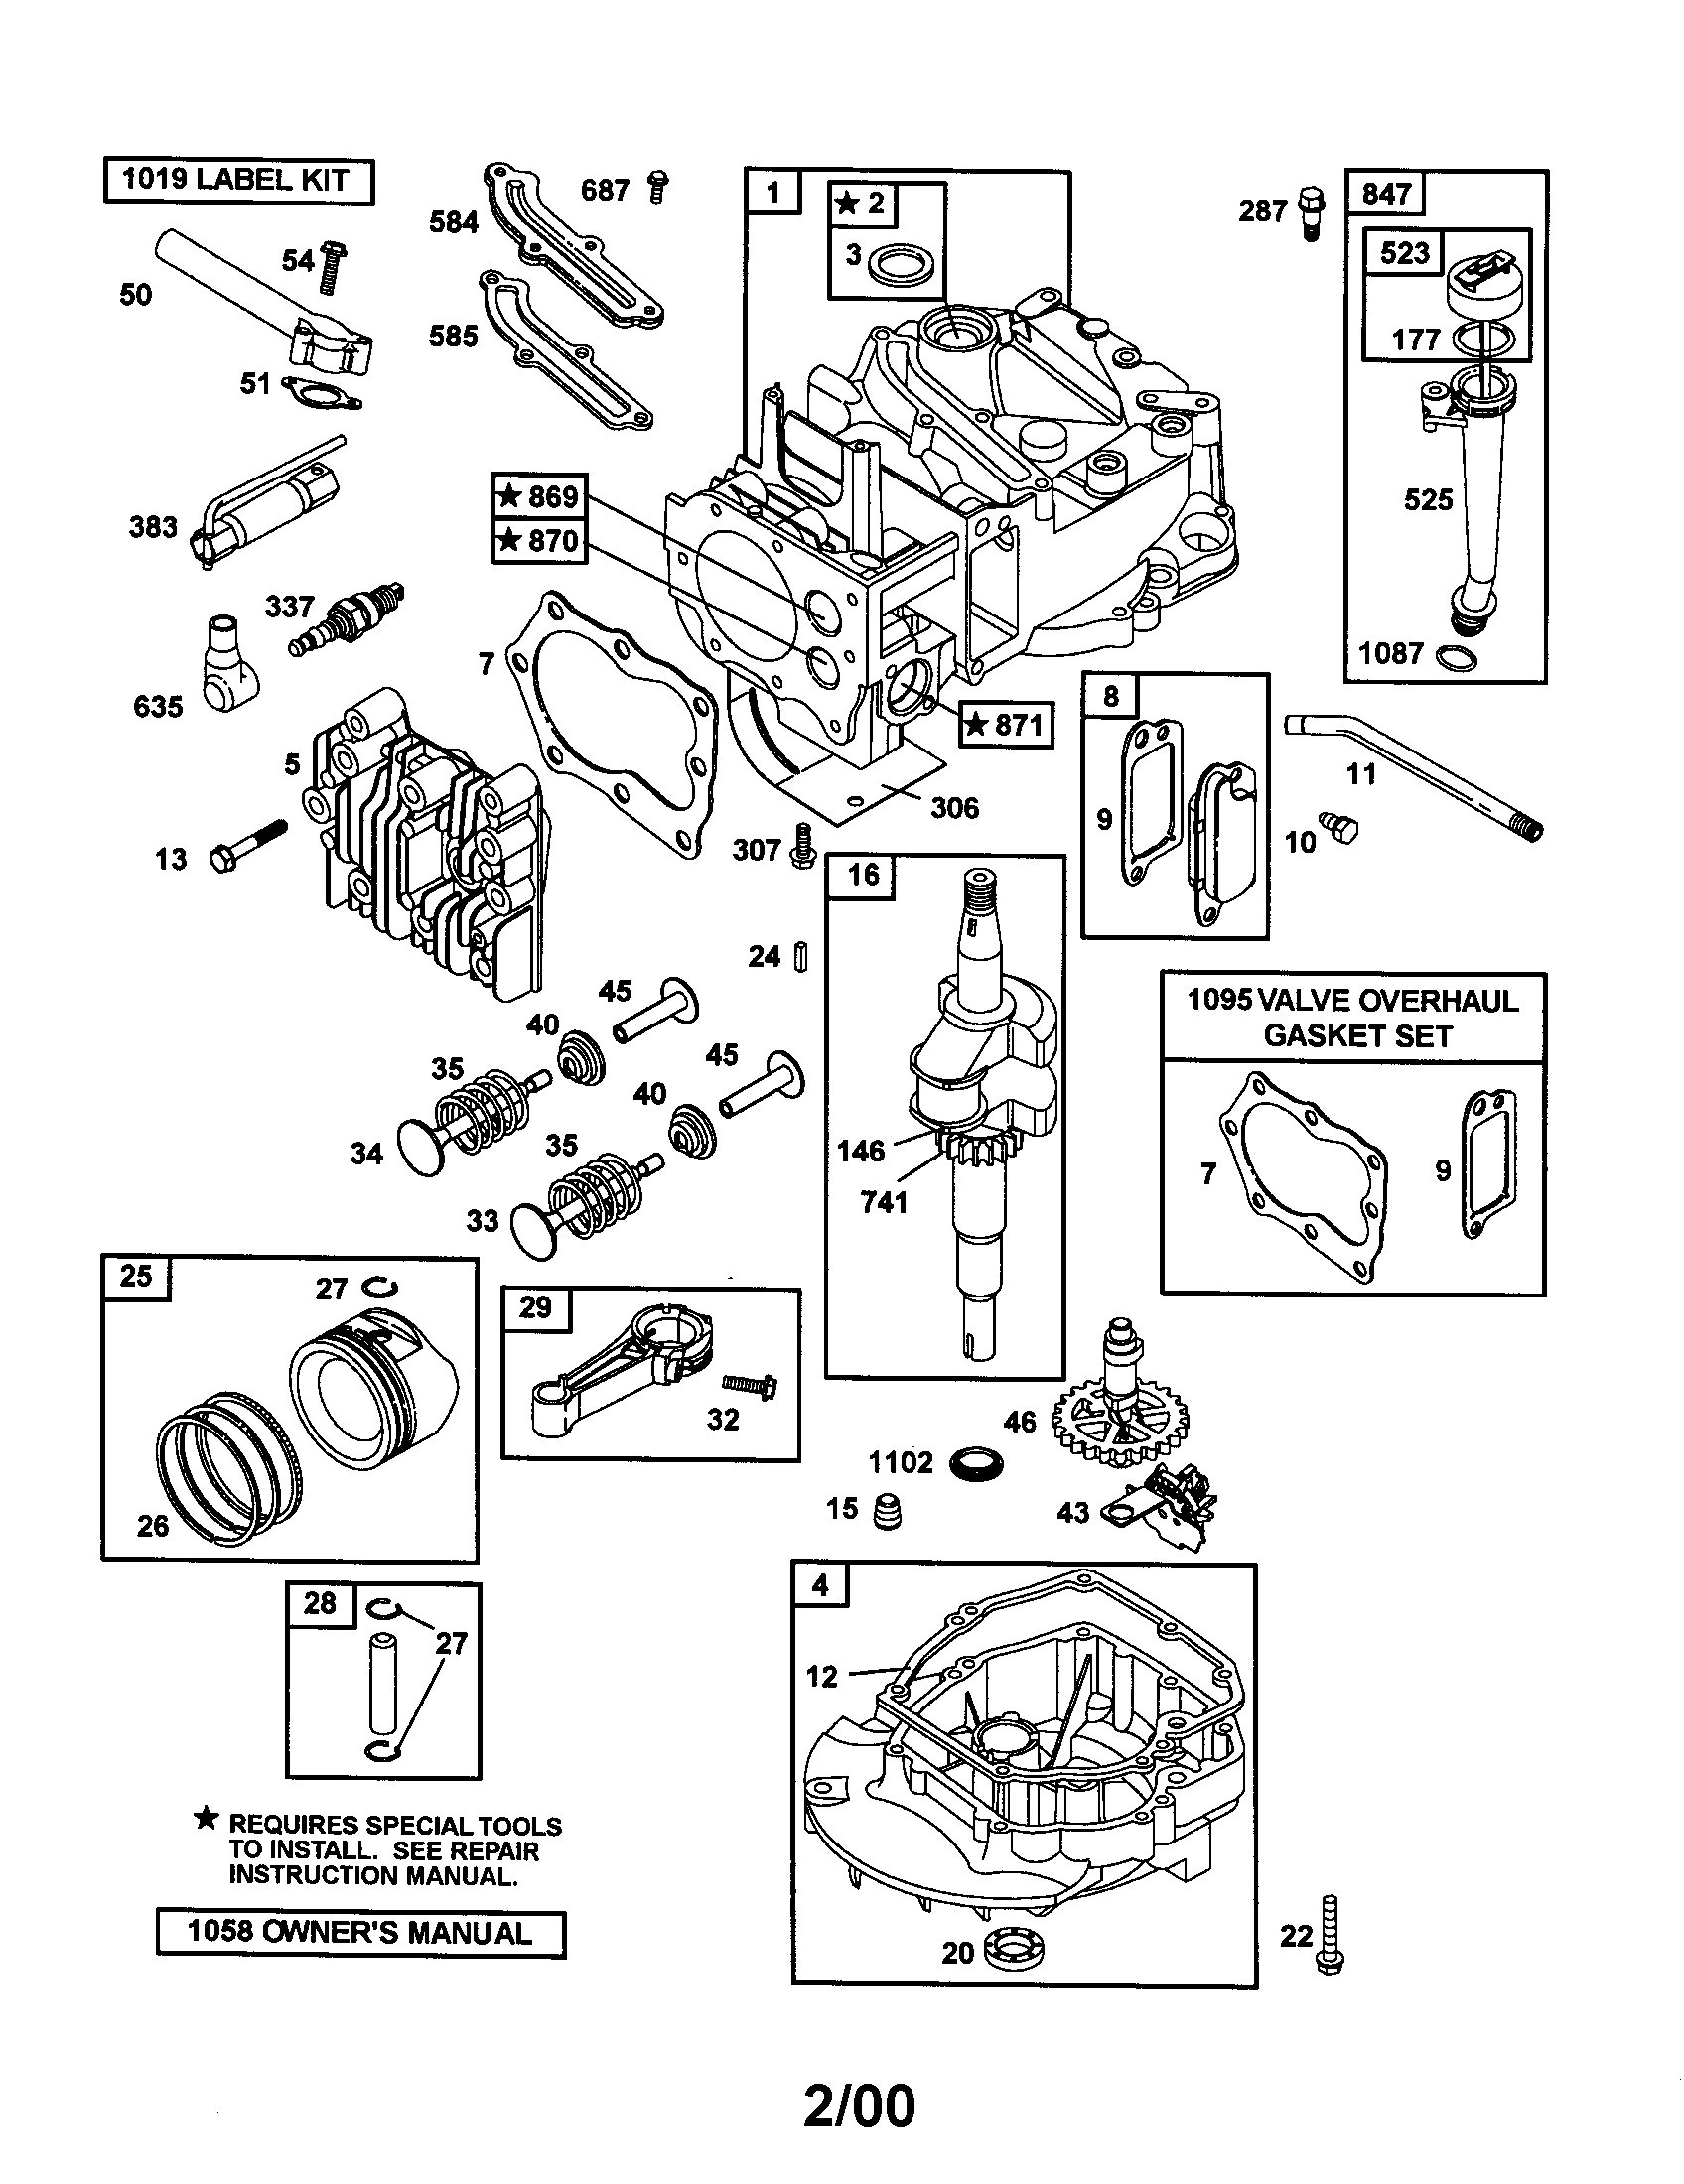 Epub Download 8 Hp Briggs Stratton Engine Diagram